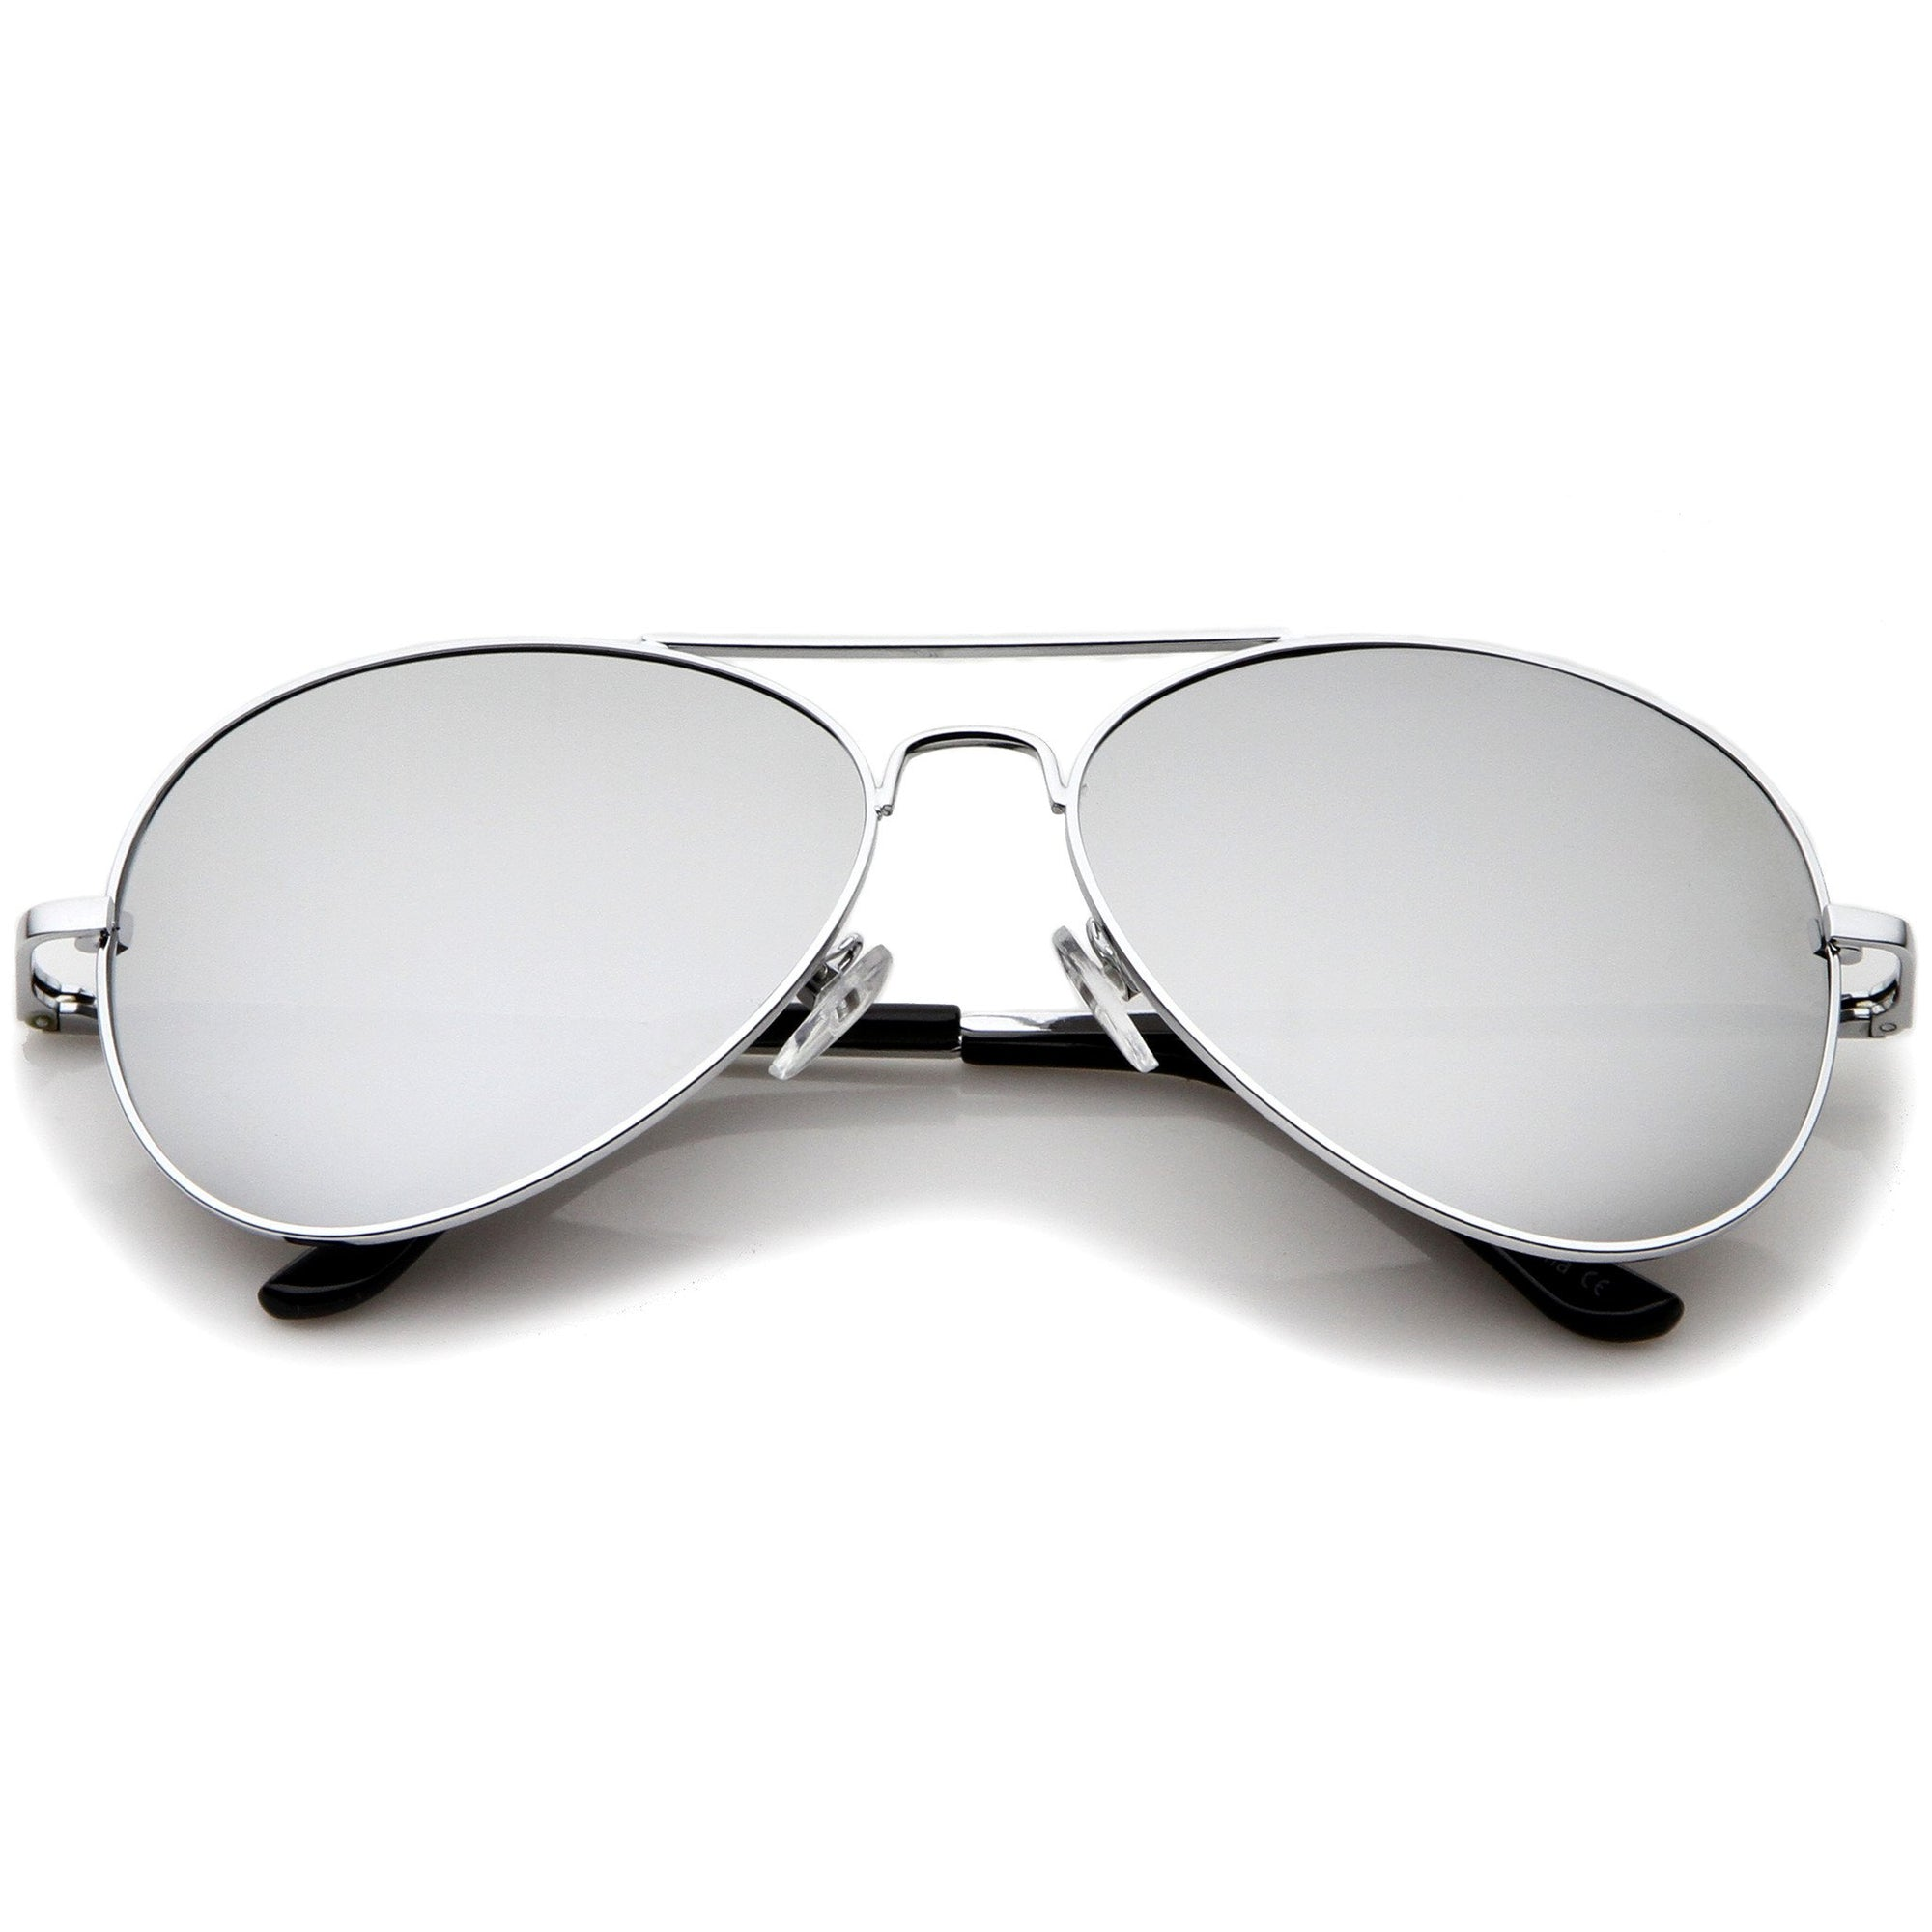 a02bd2a29516 Retro Celebrity Robert Redford Mirrored Lens Metal Aviator ...